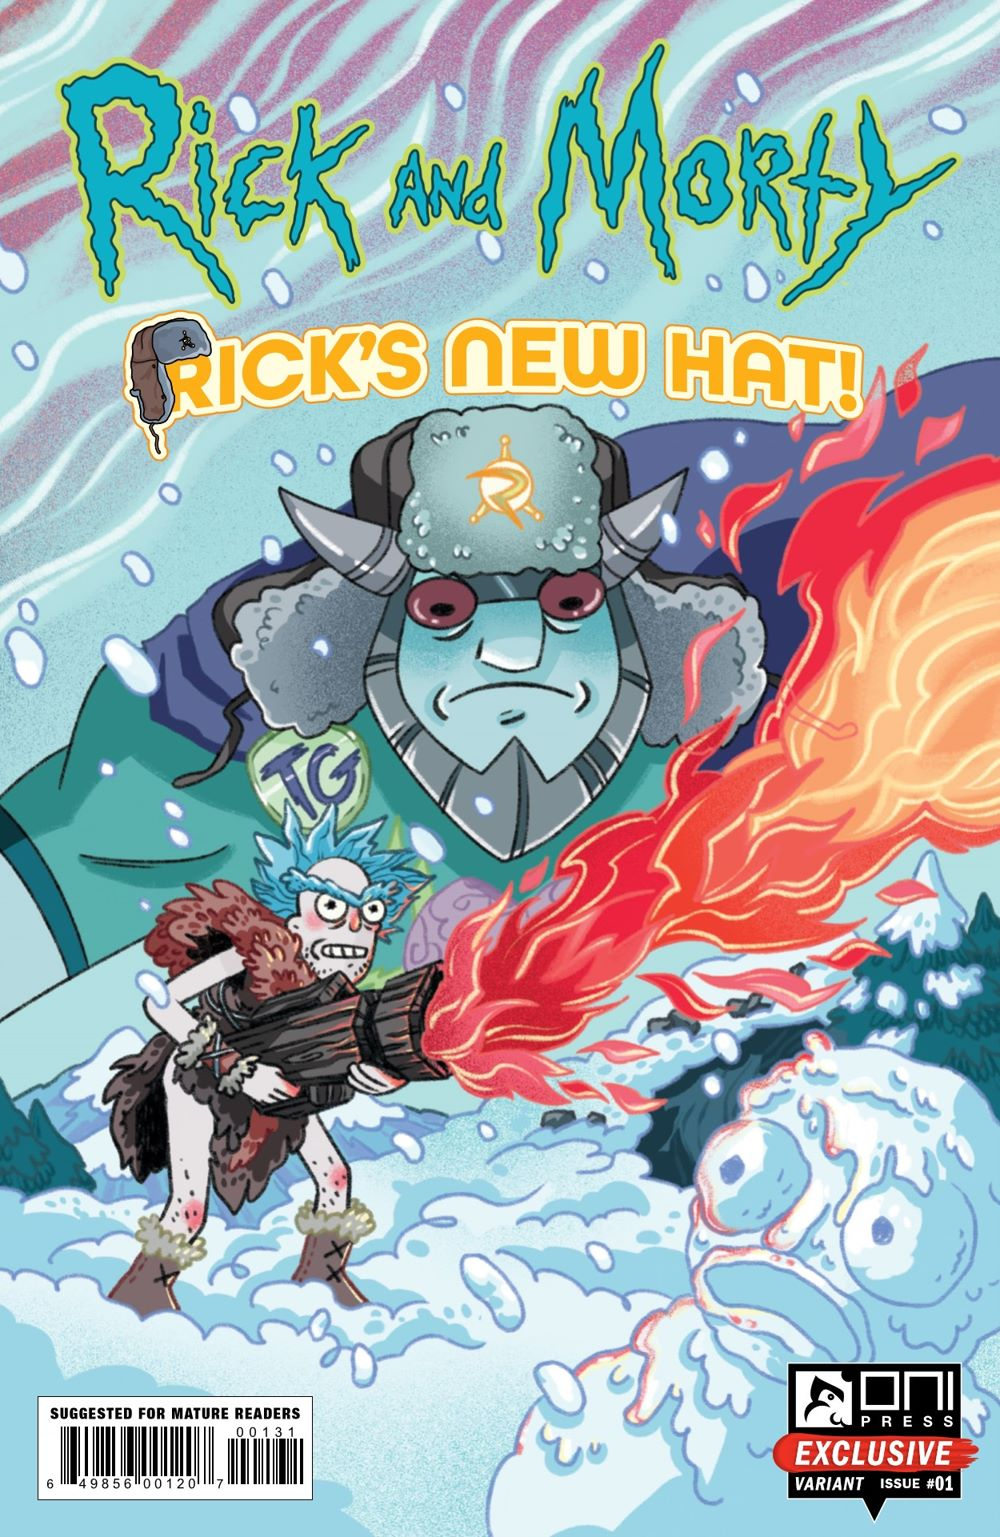 RM-RNH-1-MARKETING-03 ComicList Previews: RICK AND MORTY RICK'S NEW HAT #1